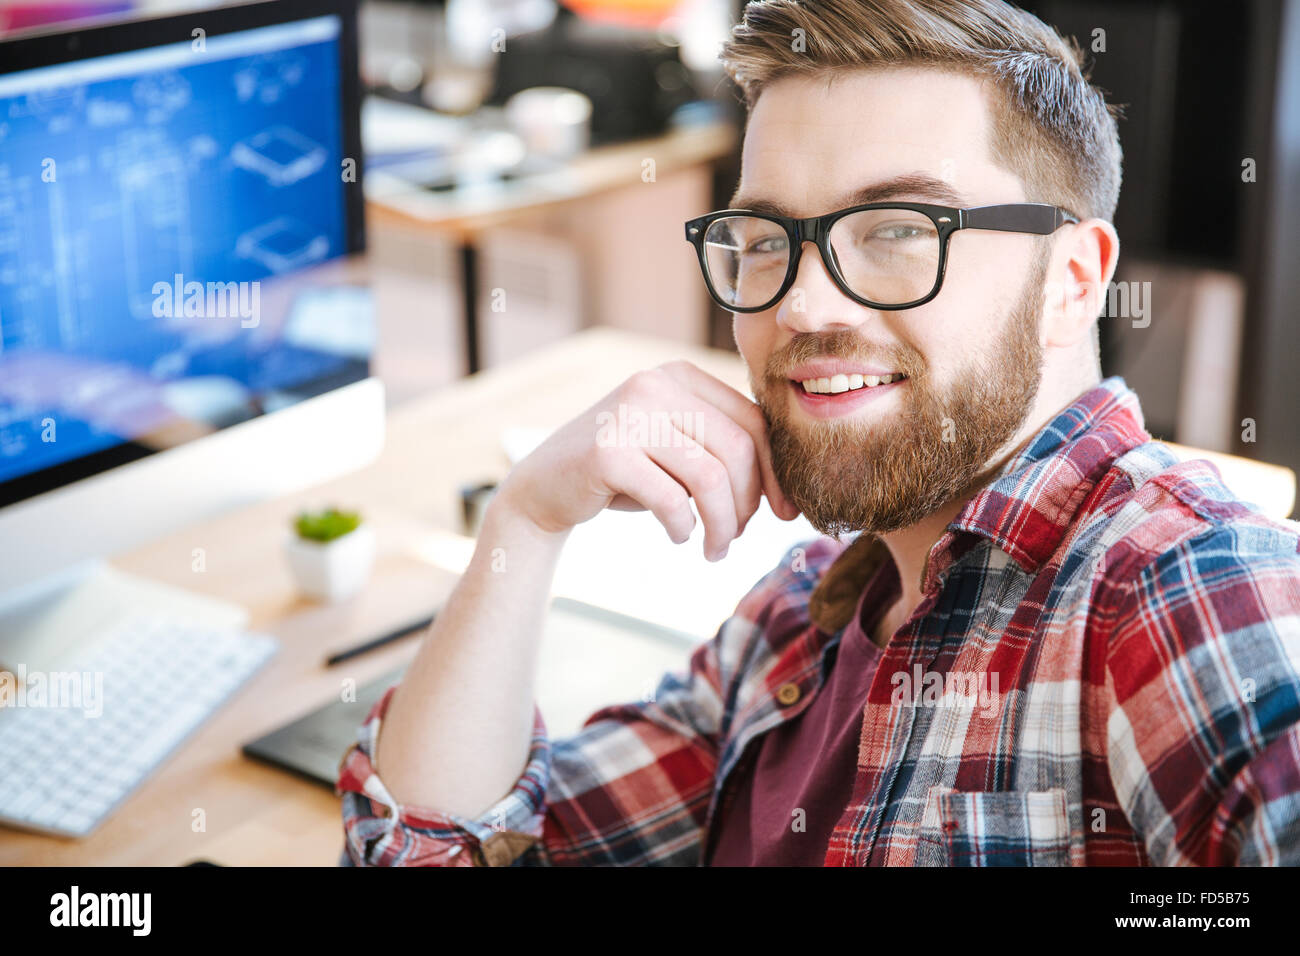 Happy young man with beard dans les verres et de la conception de projet sur son ordinateur Photo Stock